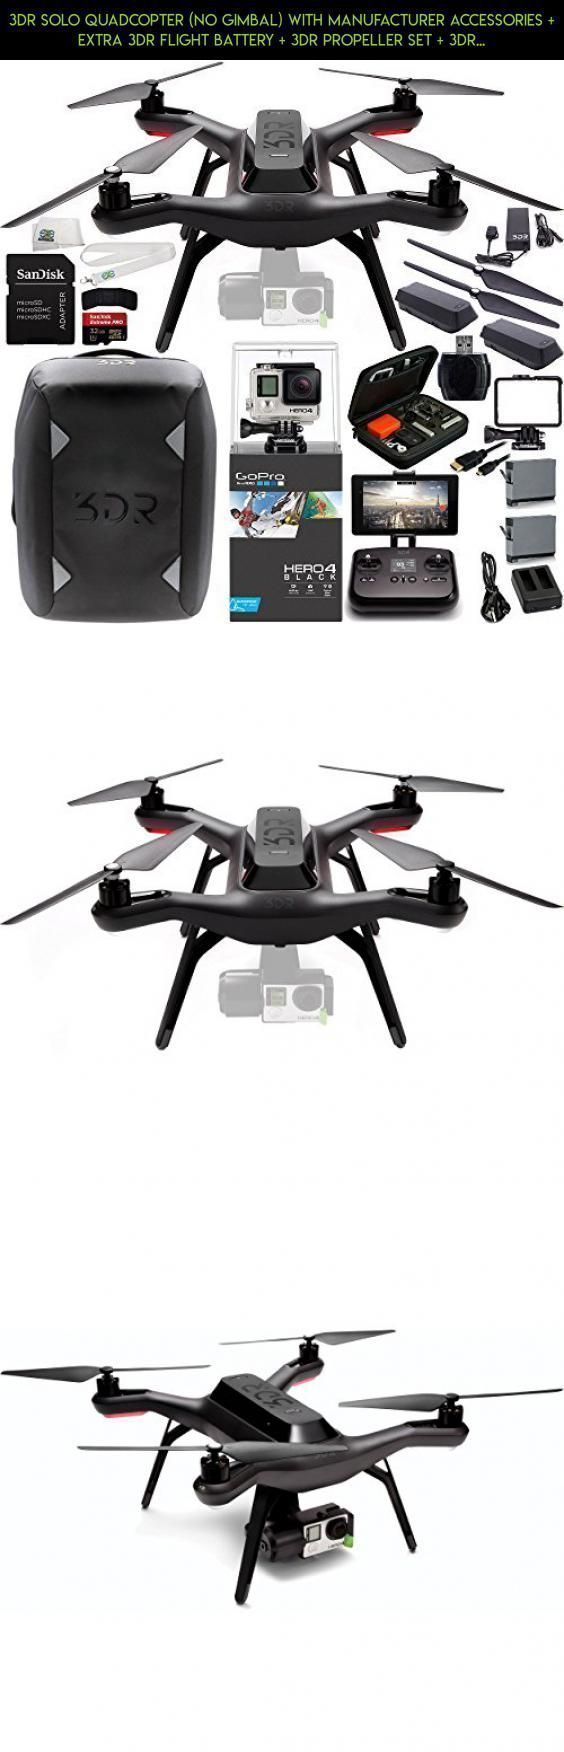 3dr Solo Quadcopter No Gimbal With Manufacturer Accessories. 3dr Solo Quadcopter No Gimbal With Manufacturer Accessories Extra Flight Battery Propeller Set Backpack Gopro Hero4 Blac. Wiring. 3dr Solo Drone Wiring Diagram At Scoala.co